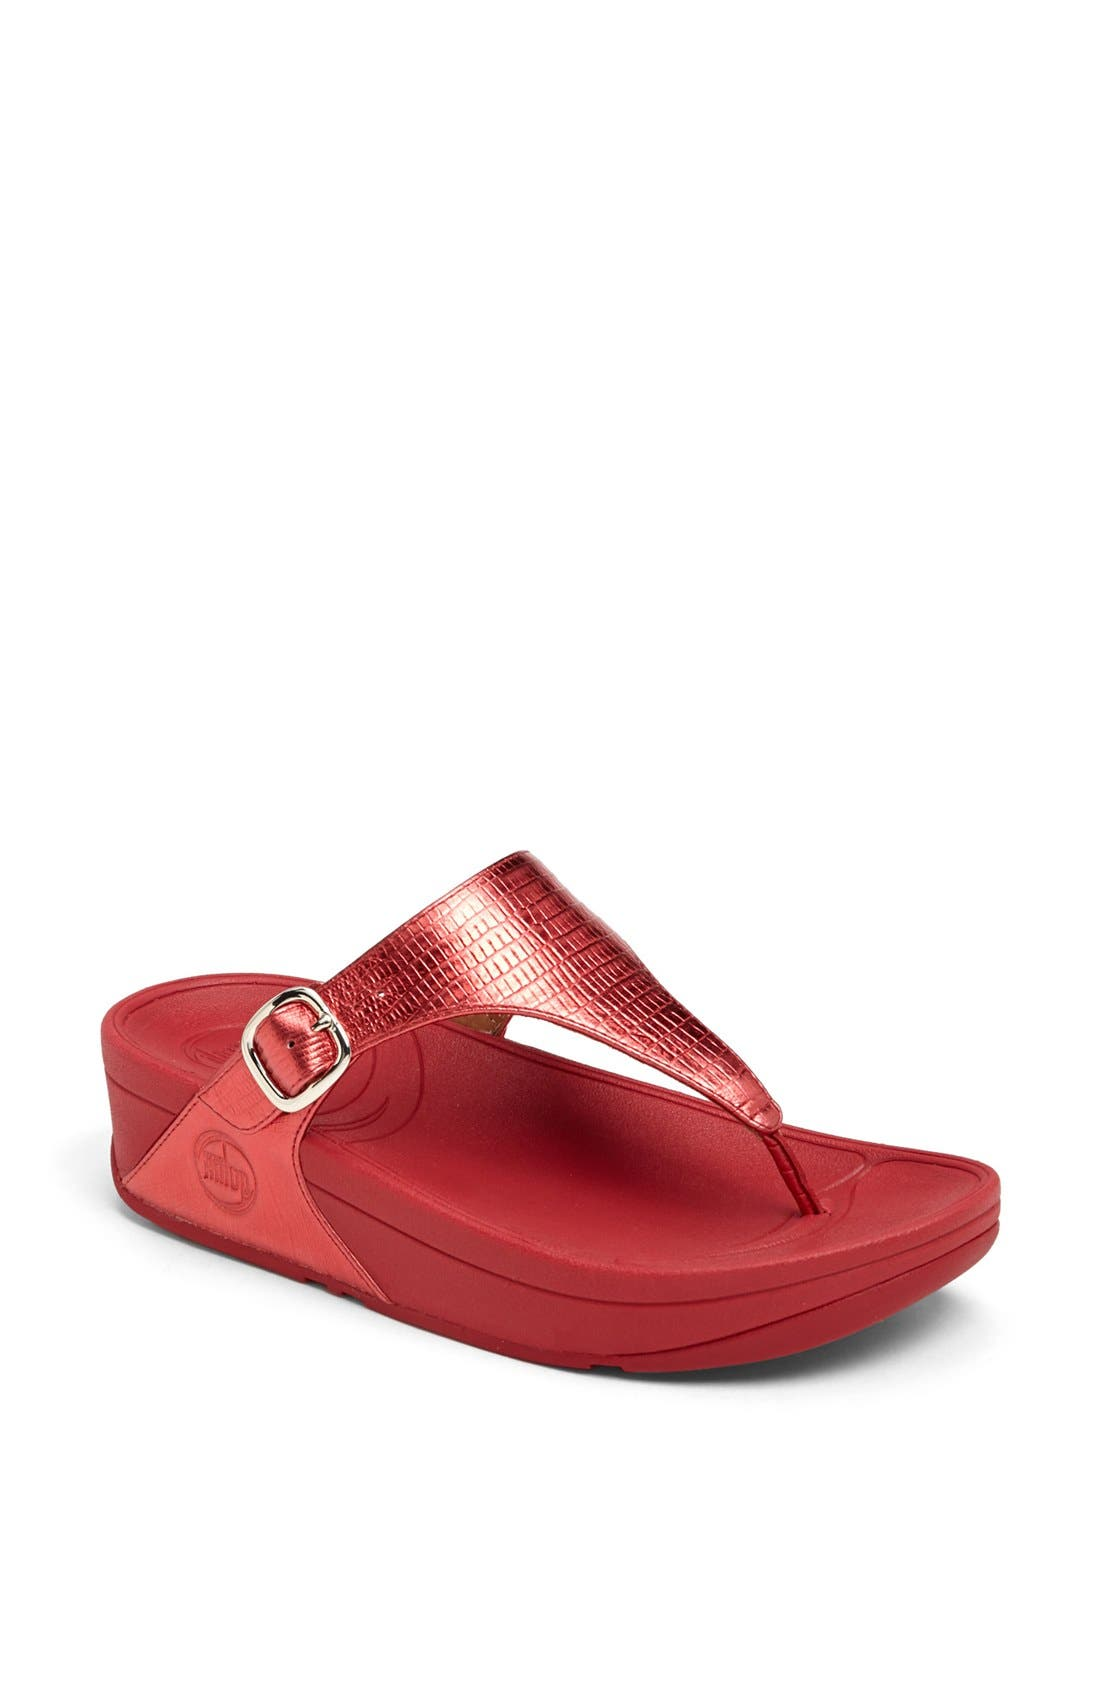 Alternate Image 1 Selected - FitFlop 'The Skinny™' Flip Flop (Women)